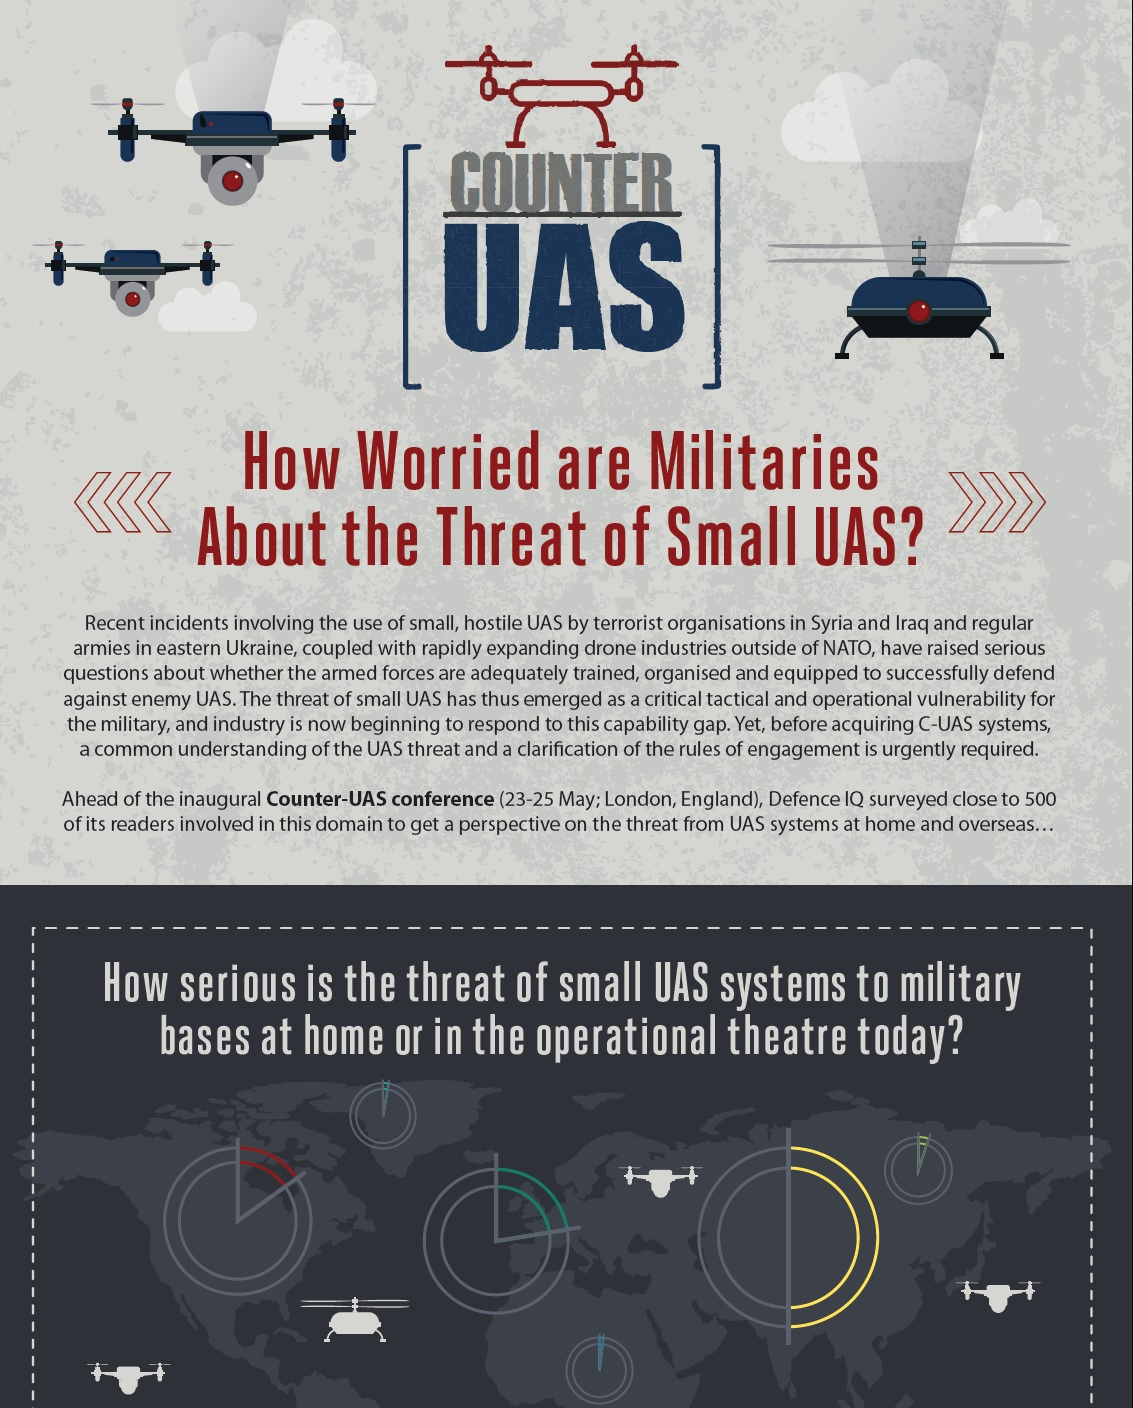 Infographic - Counter UAS Worldwide Survey Results - How Worried are Militaries  About the Threat of Small UAS?